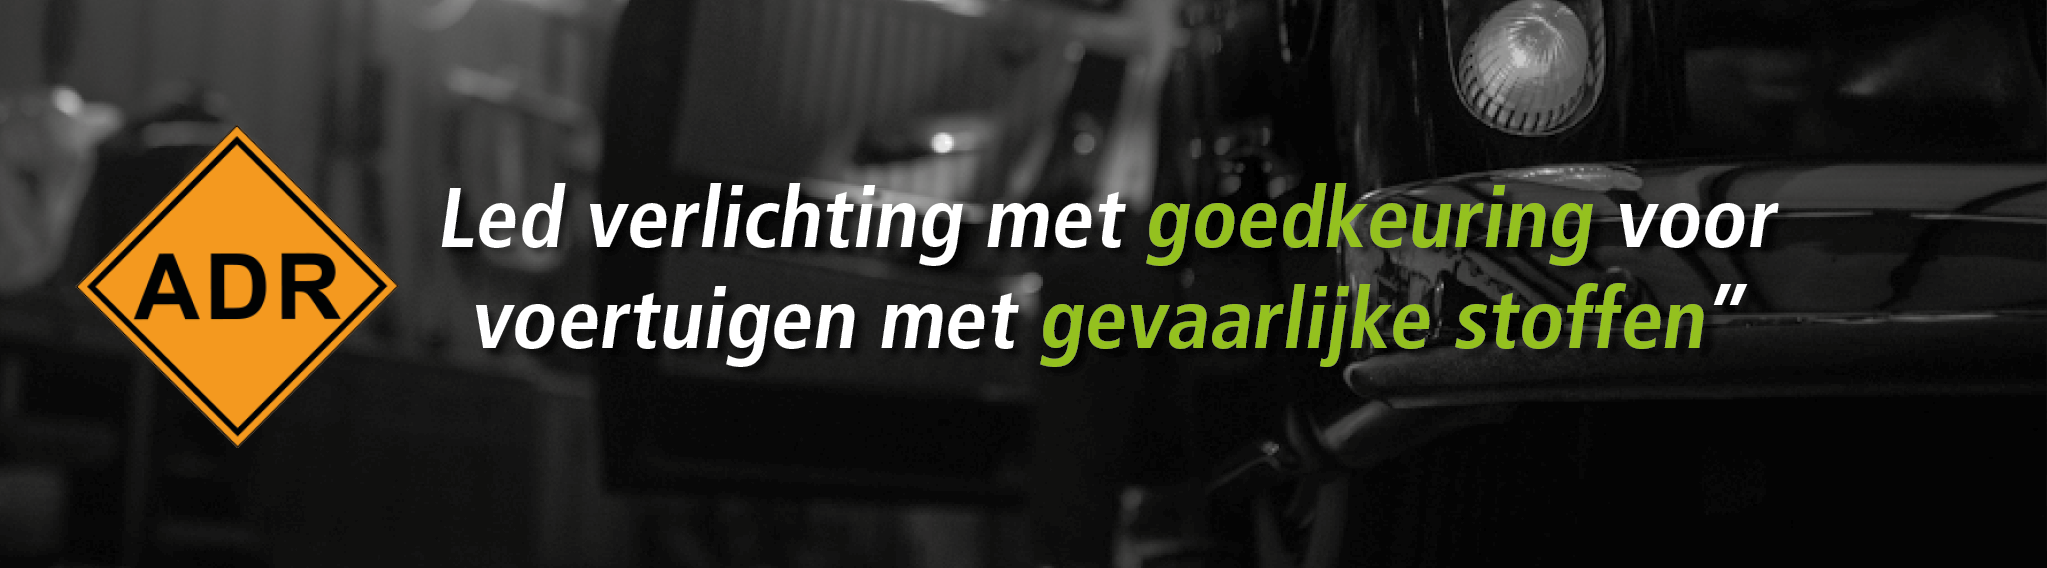 https://www.tippointtrading.nl/service/adr-led-verlichting